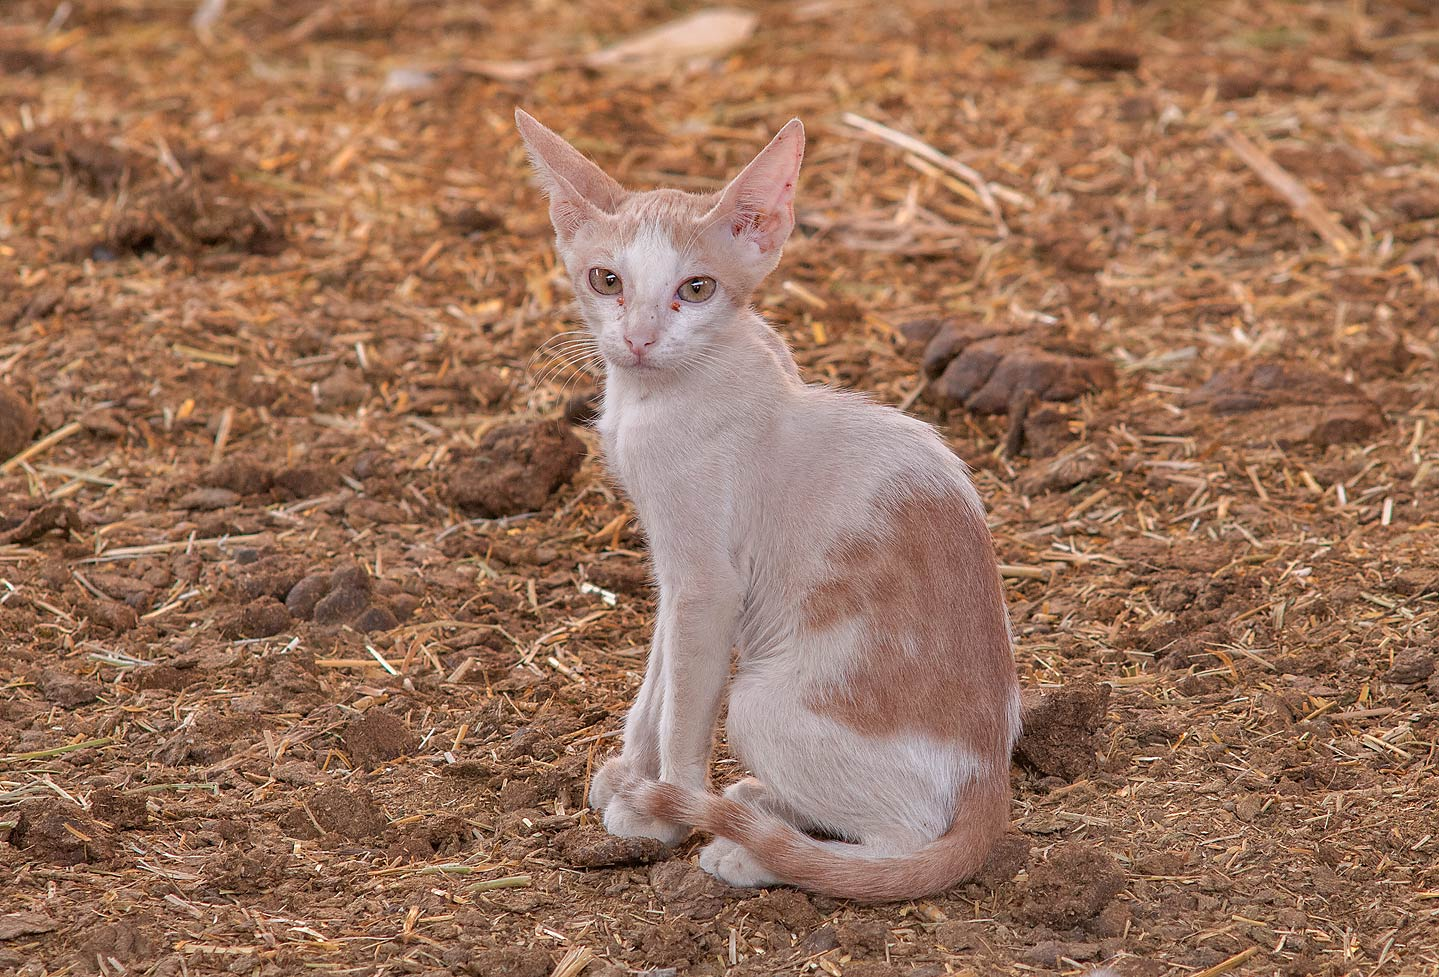 Pale brown cat sitting in Camel Market, Livestock Markets area in Abu Hamour. Doha, Qatar